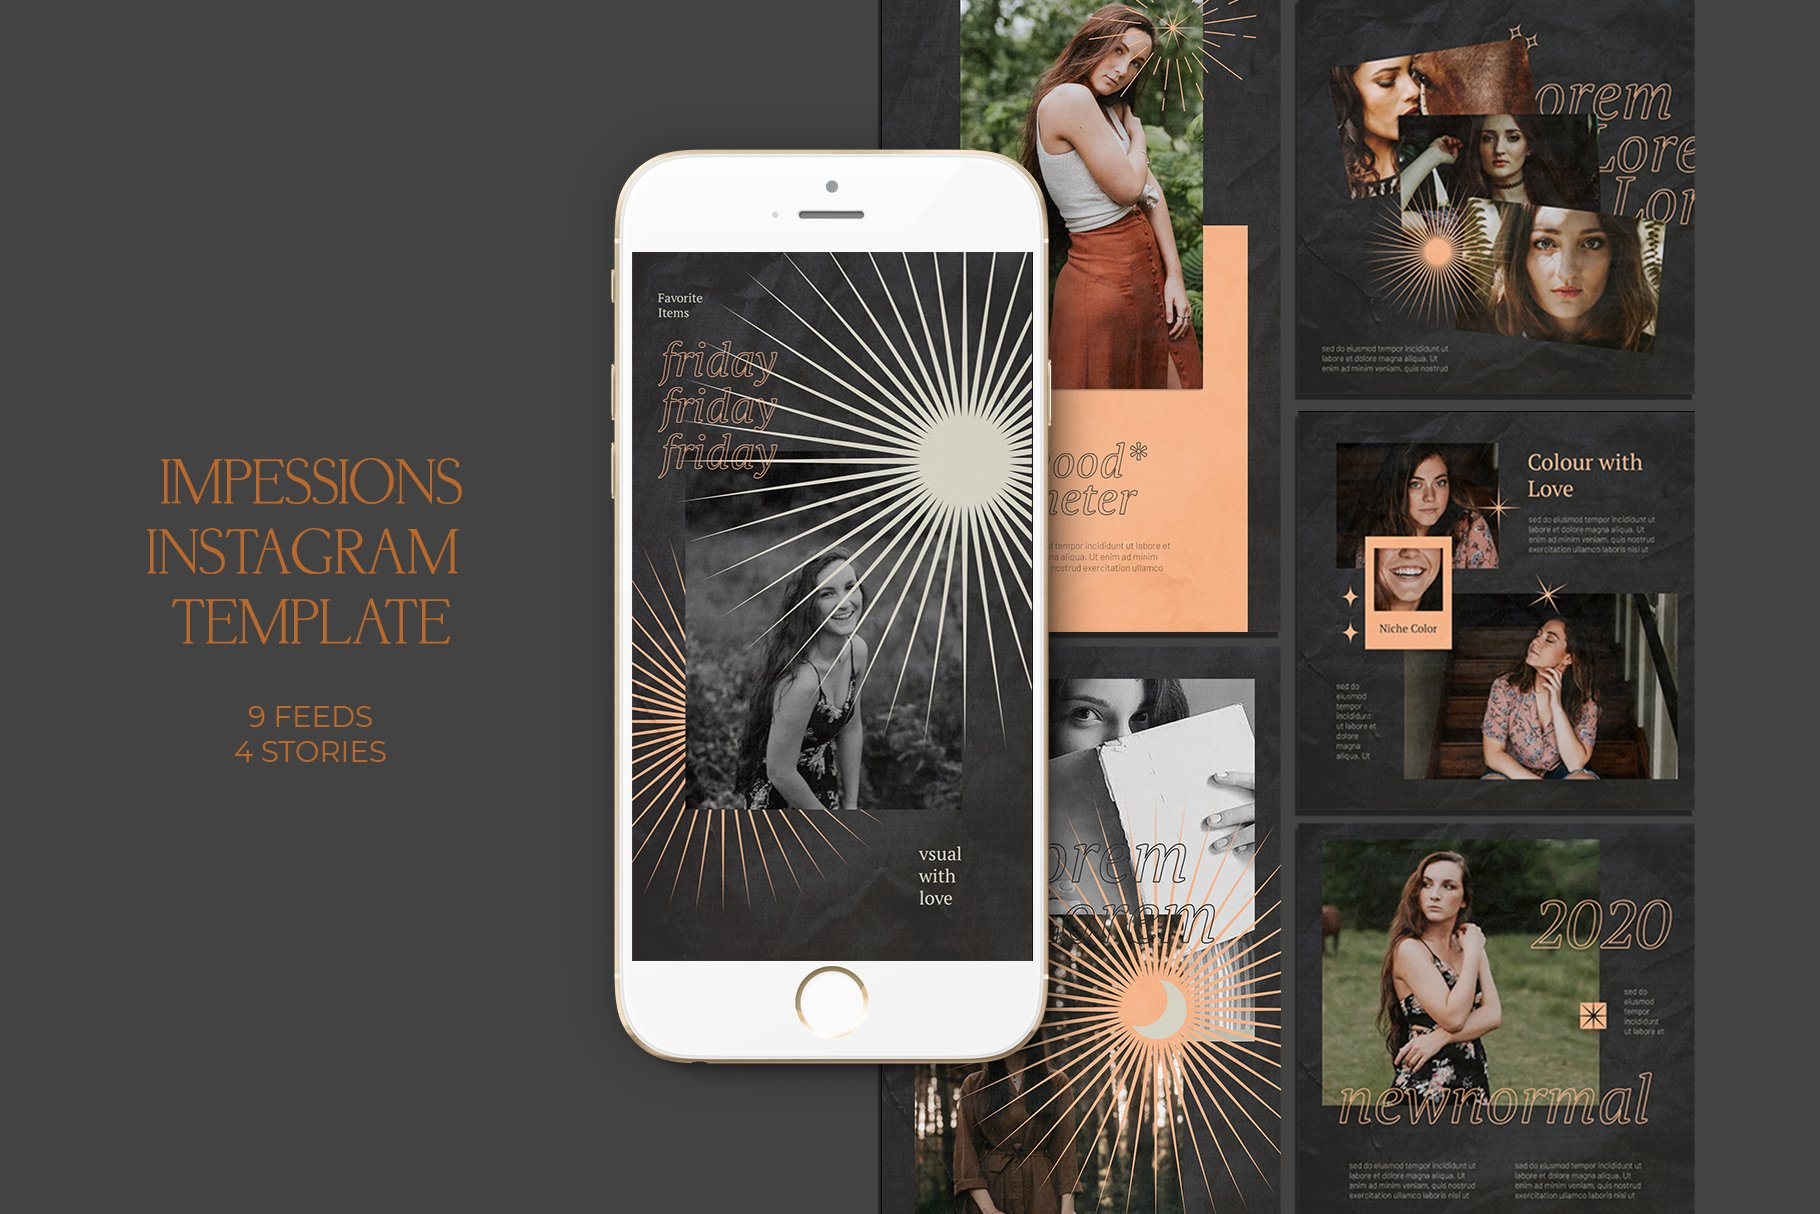 impessions Instagram Templates example image 1